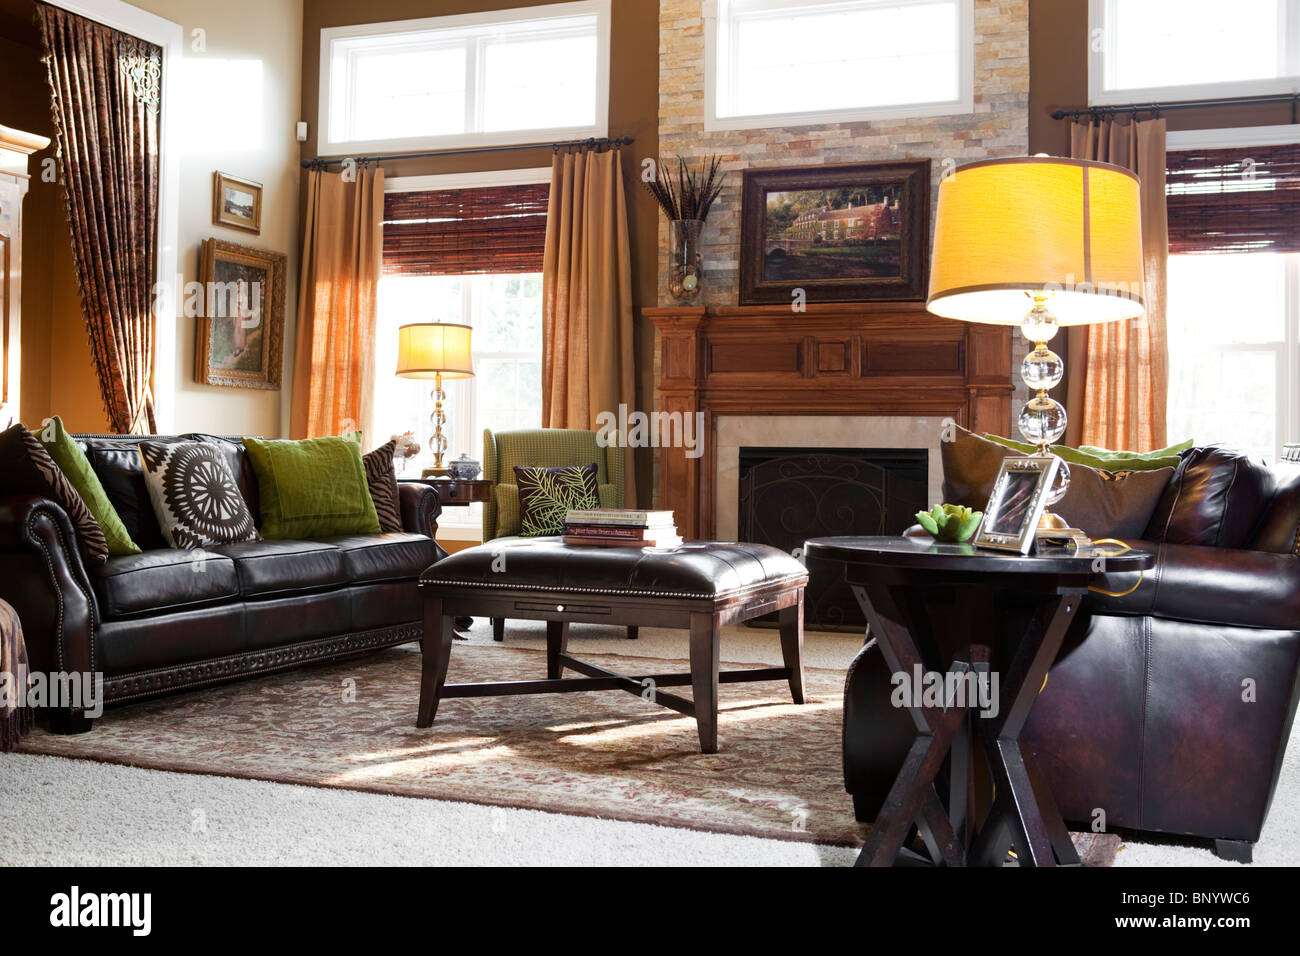 American living room in countryside house in Midwest with